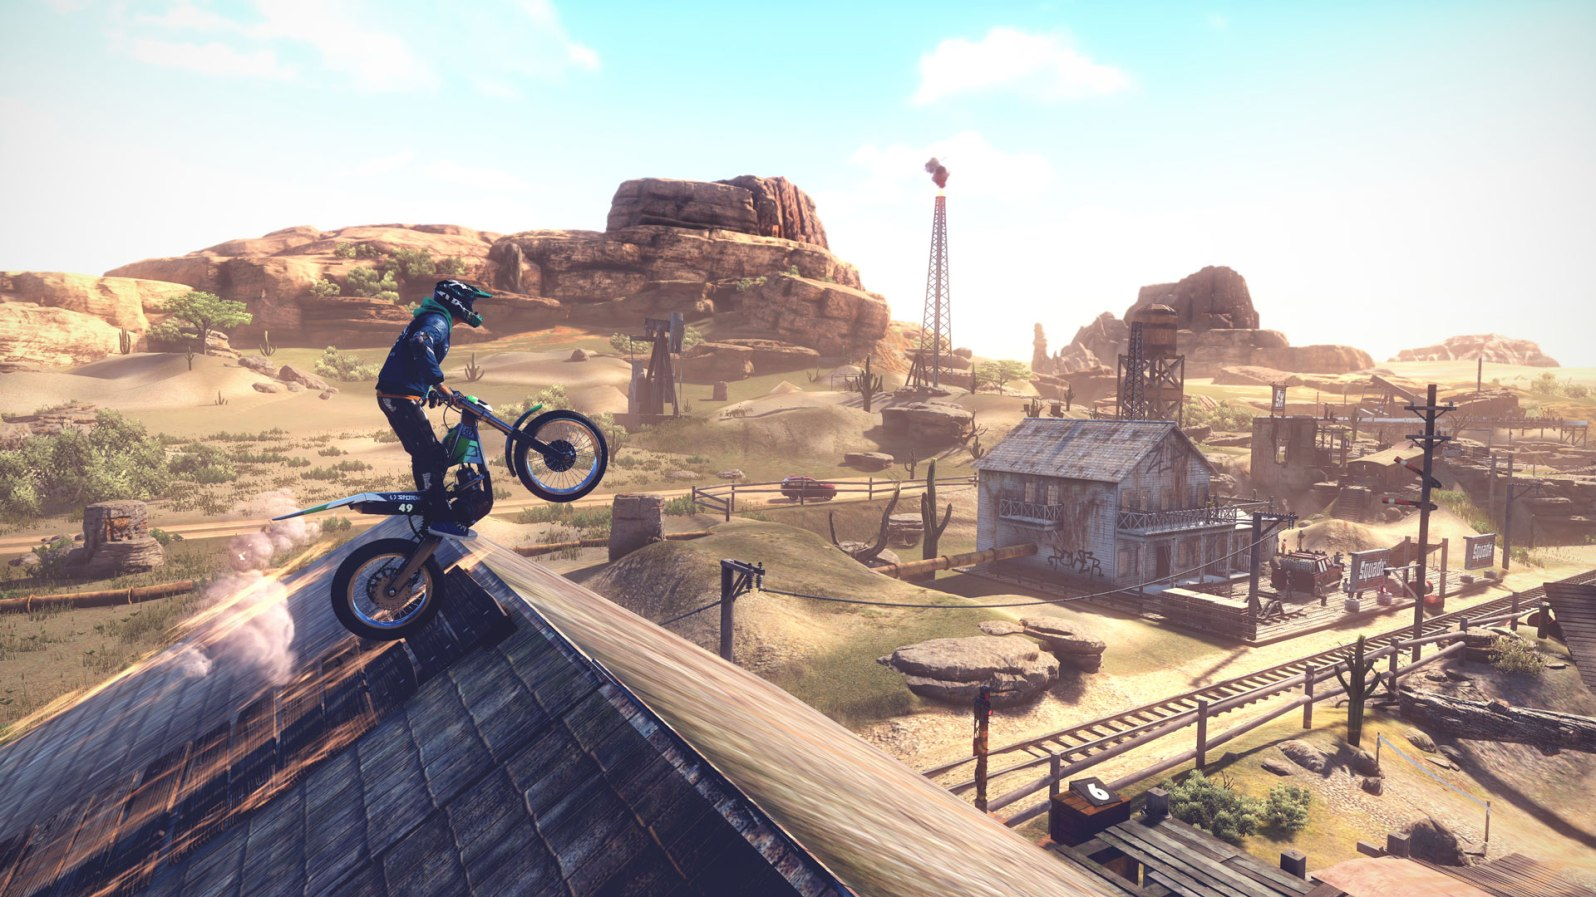 Quelle: ubisoft.com - Trials Rising